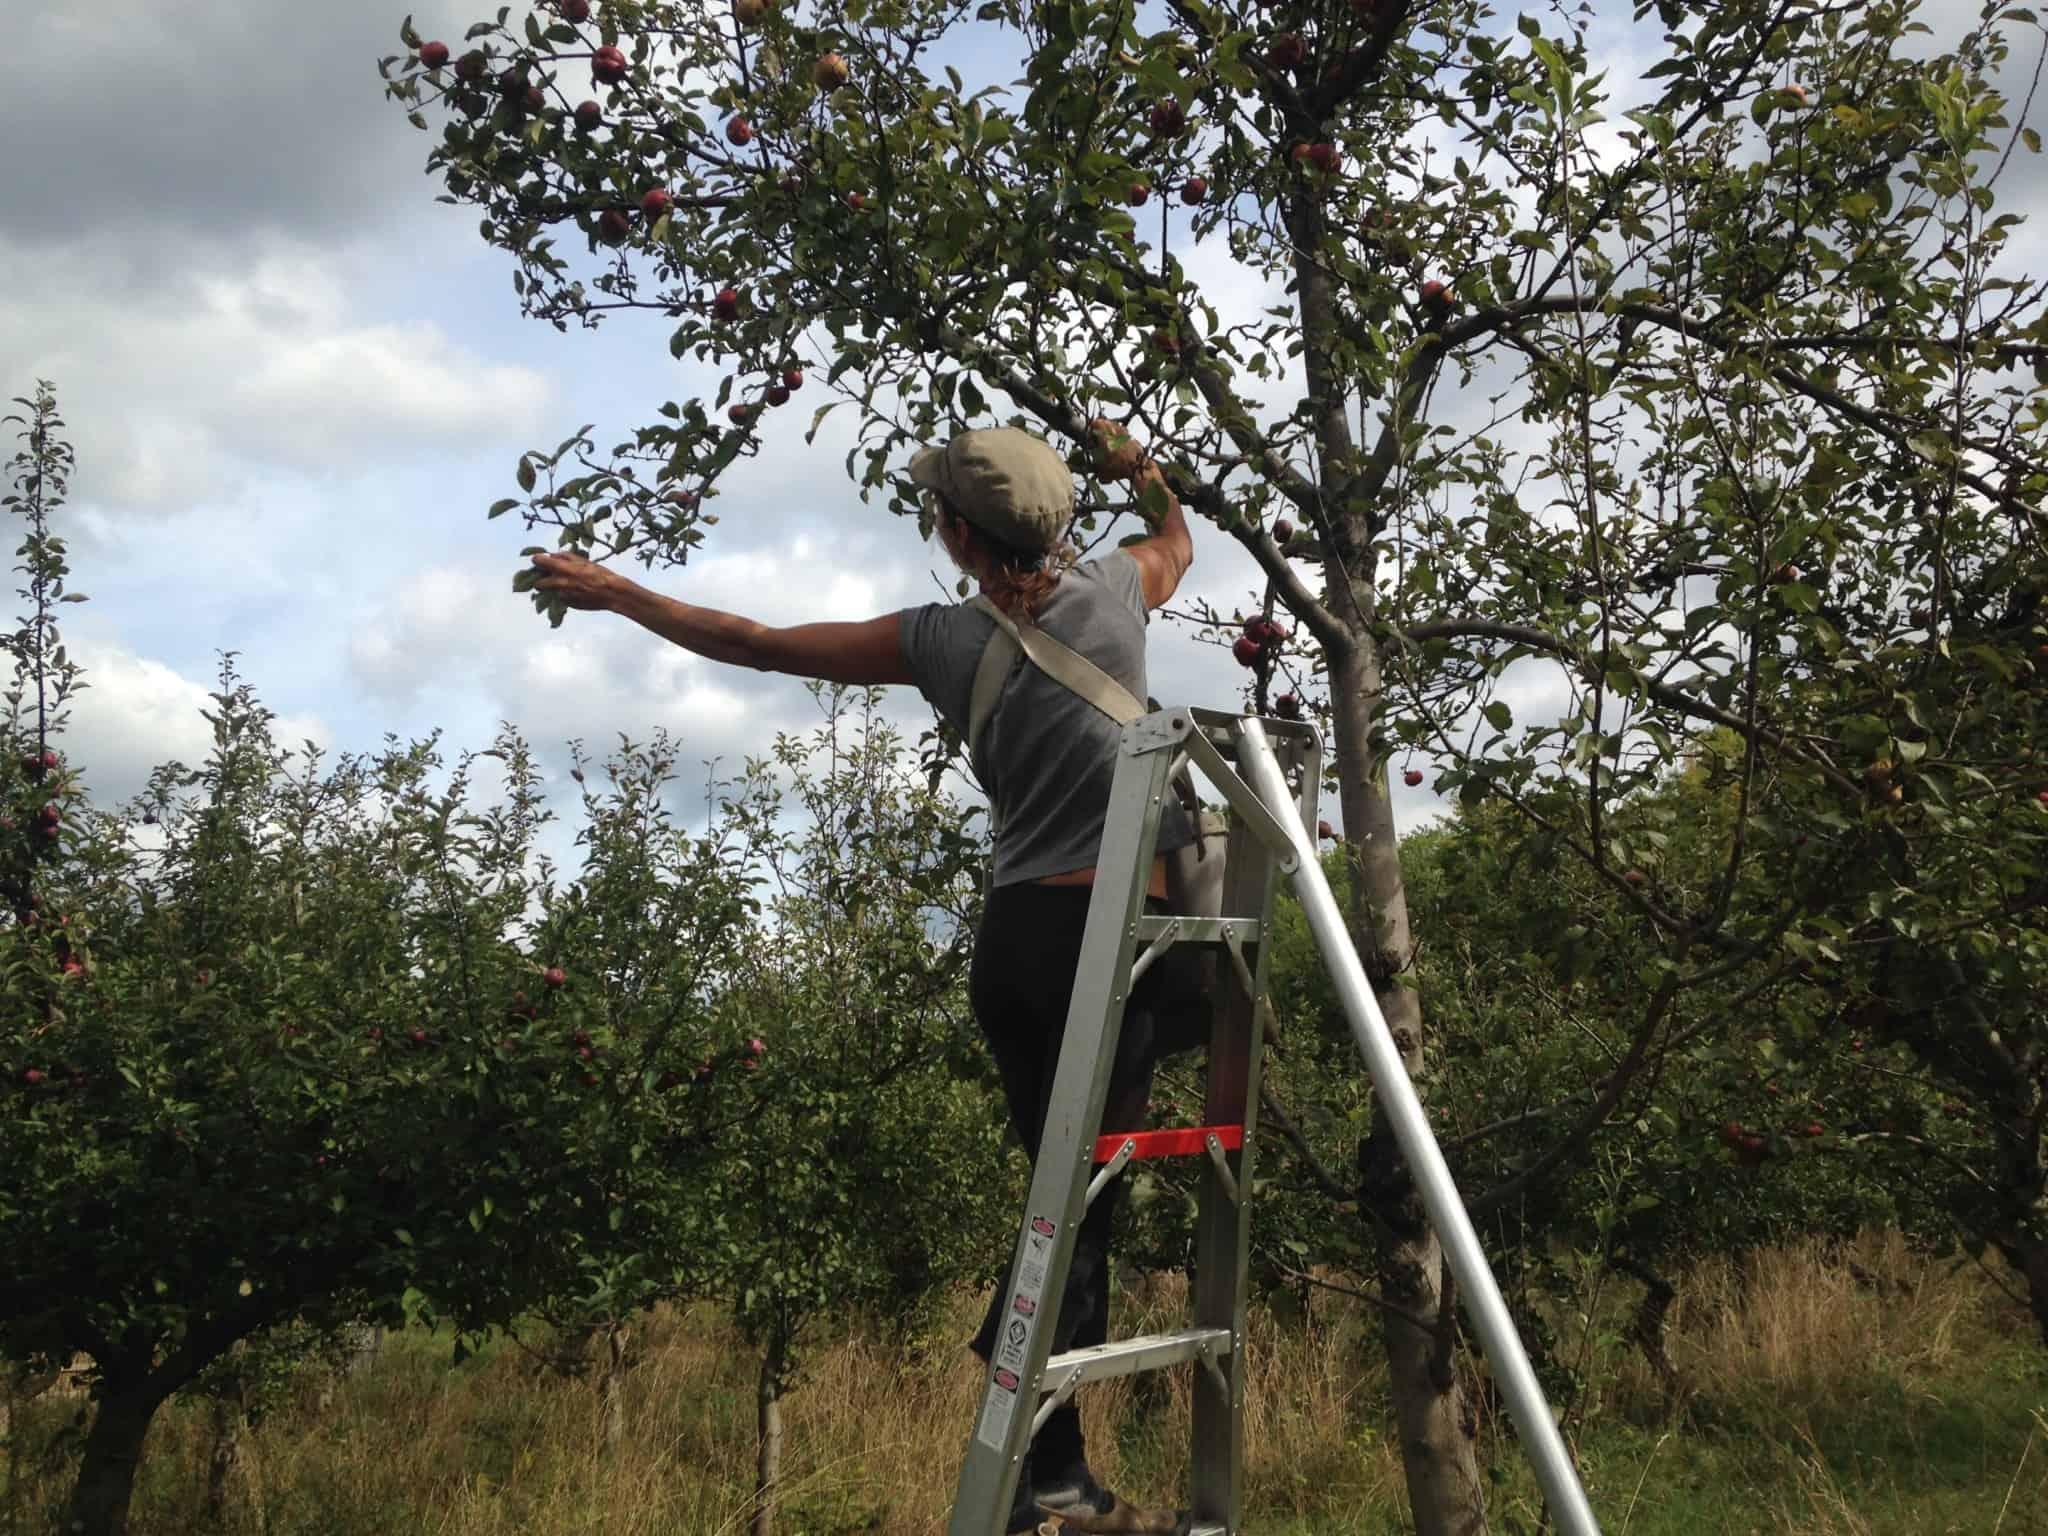 picking-celia-on-a-ladder